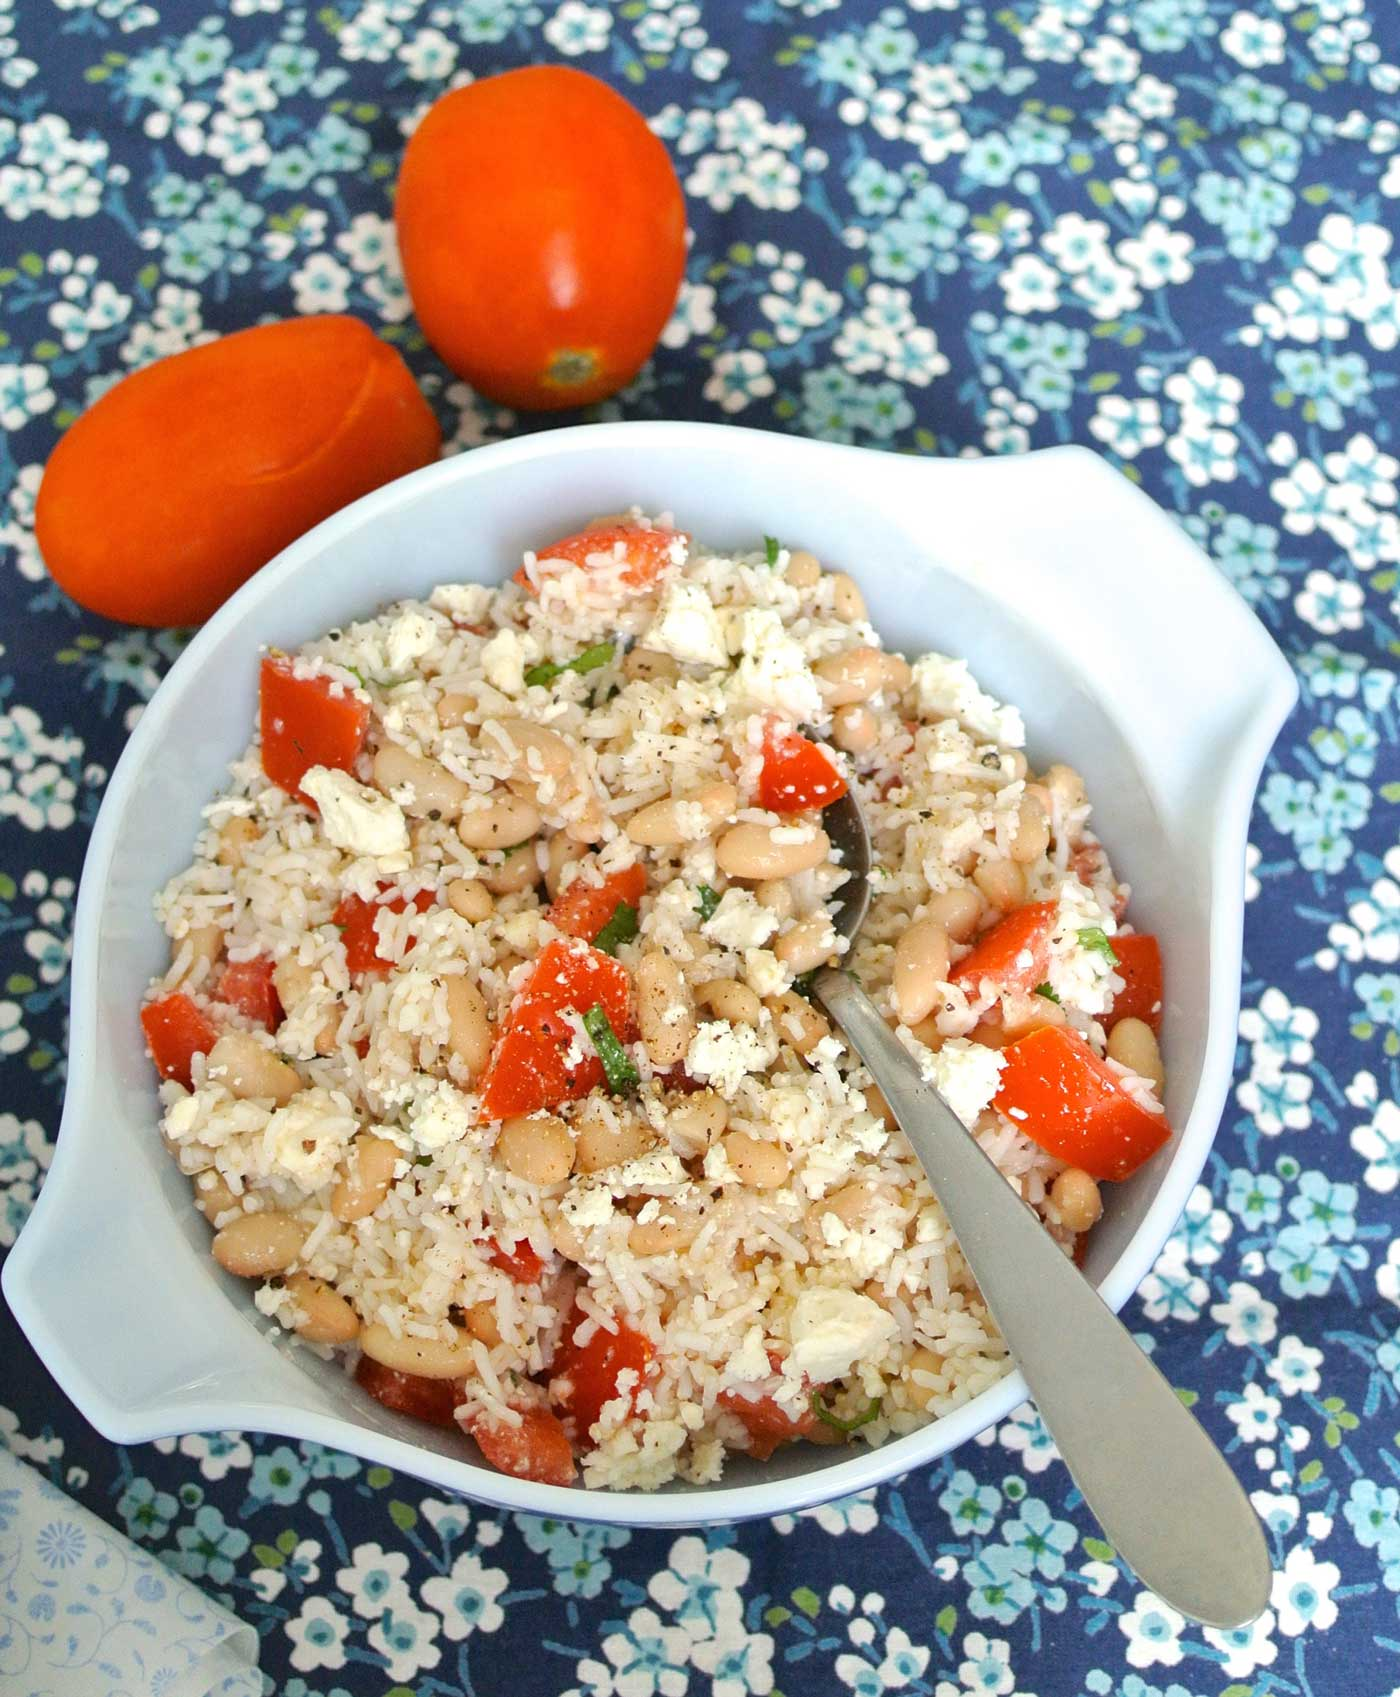 SALAD DAYS: Rice Salad with Tomato, Feta and Beans